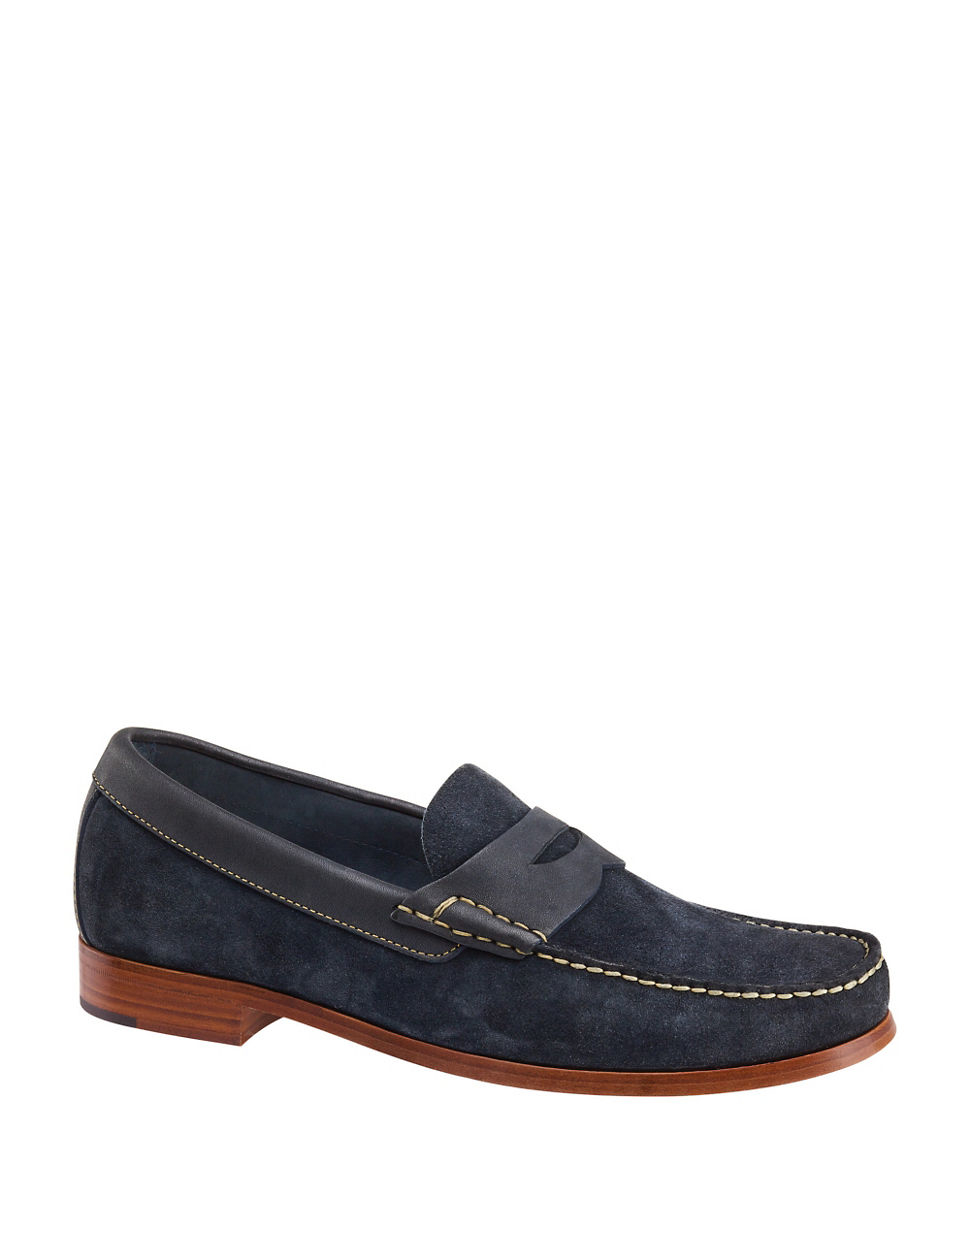 Johnston amp Murphy Danbury Penny Suede Loafers In Black For